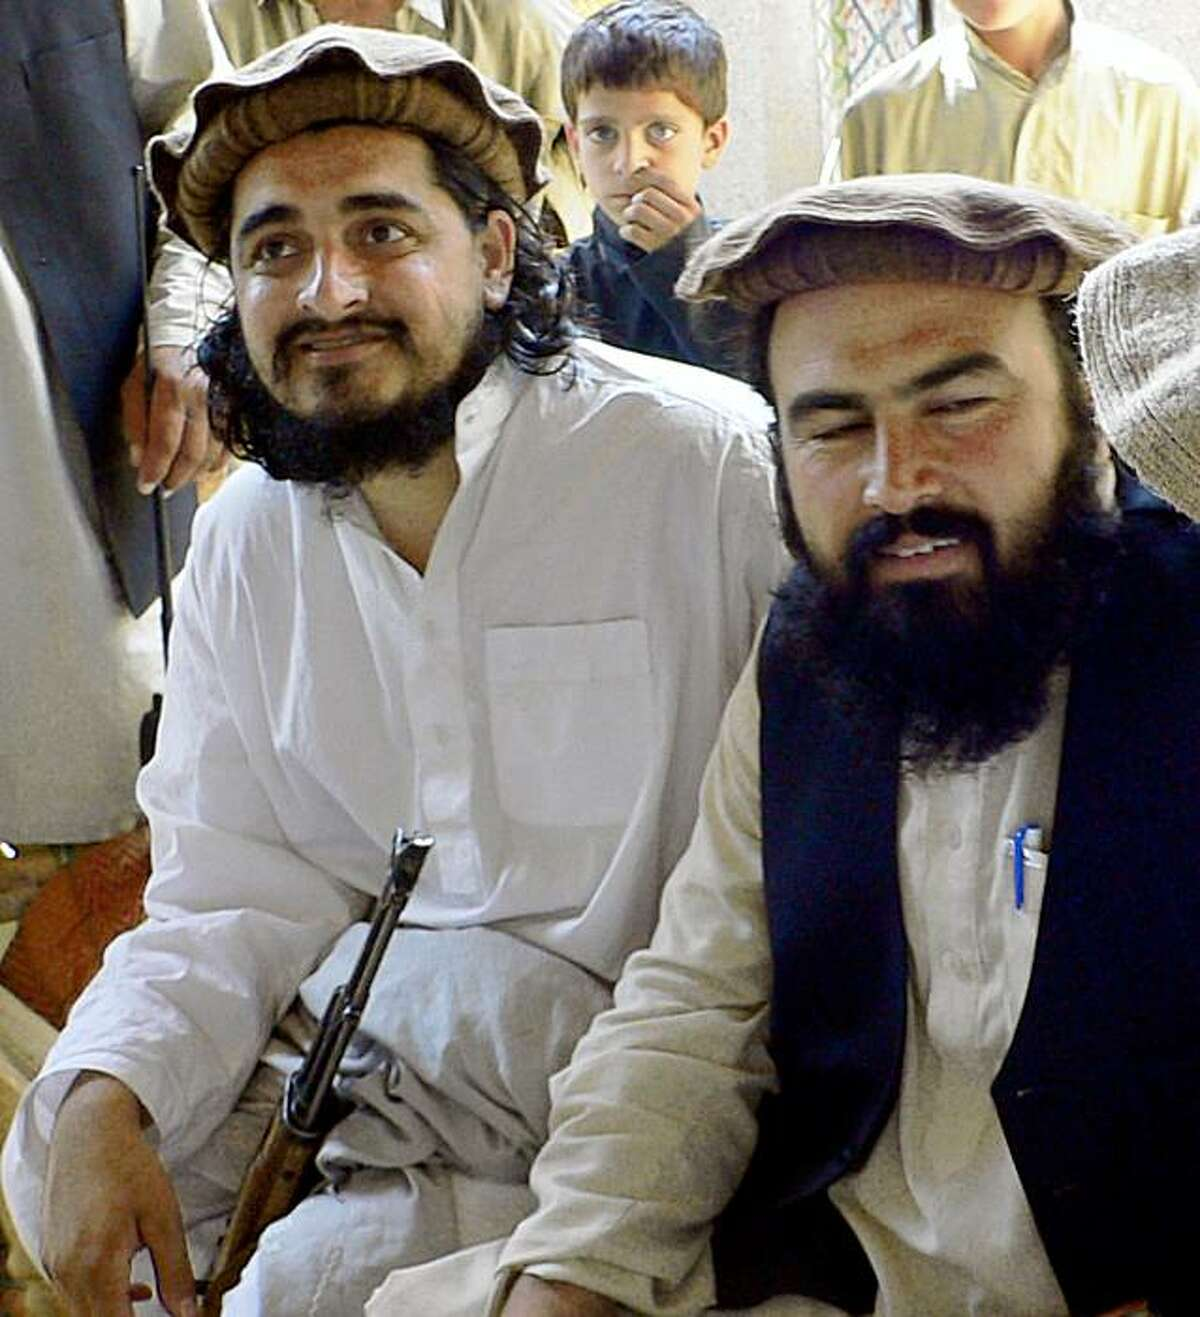 In this photograph taken on October 4, 2009 shows new Pakistani Taliban chief Hakimullah Mehsud (L) sits with his commander Wali-ur Rehman (R) during his meeting with local media representatives in Sararogha area of South Waziristan along the Afghanistan border. Hakimullah Mehsud appeared in front of the local media persons on October 4, dispelling rumours of his death and vowing